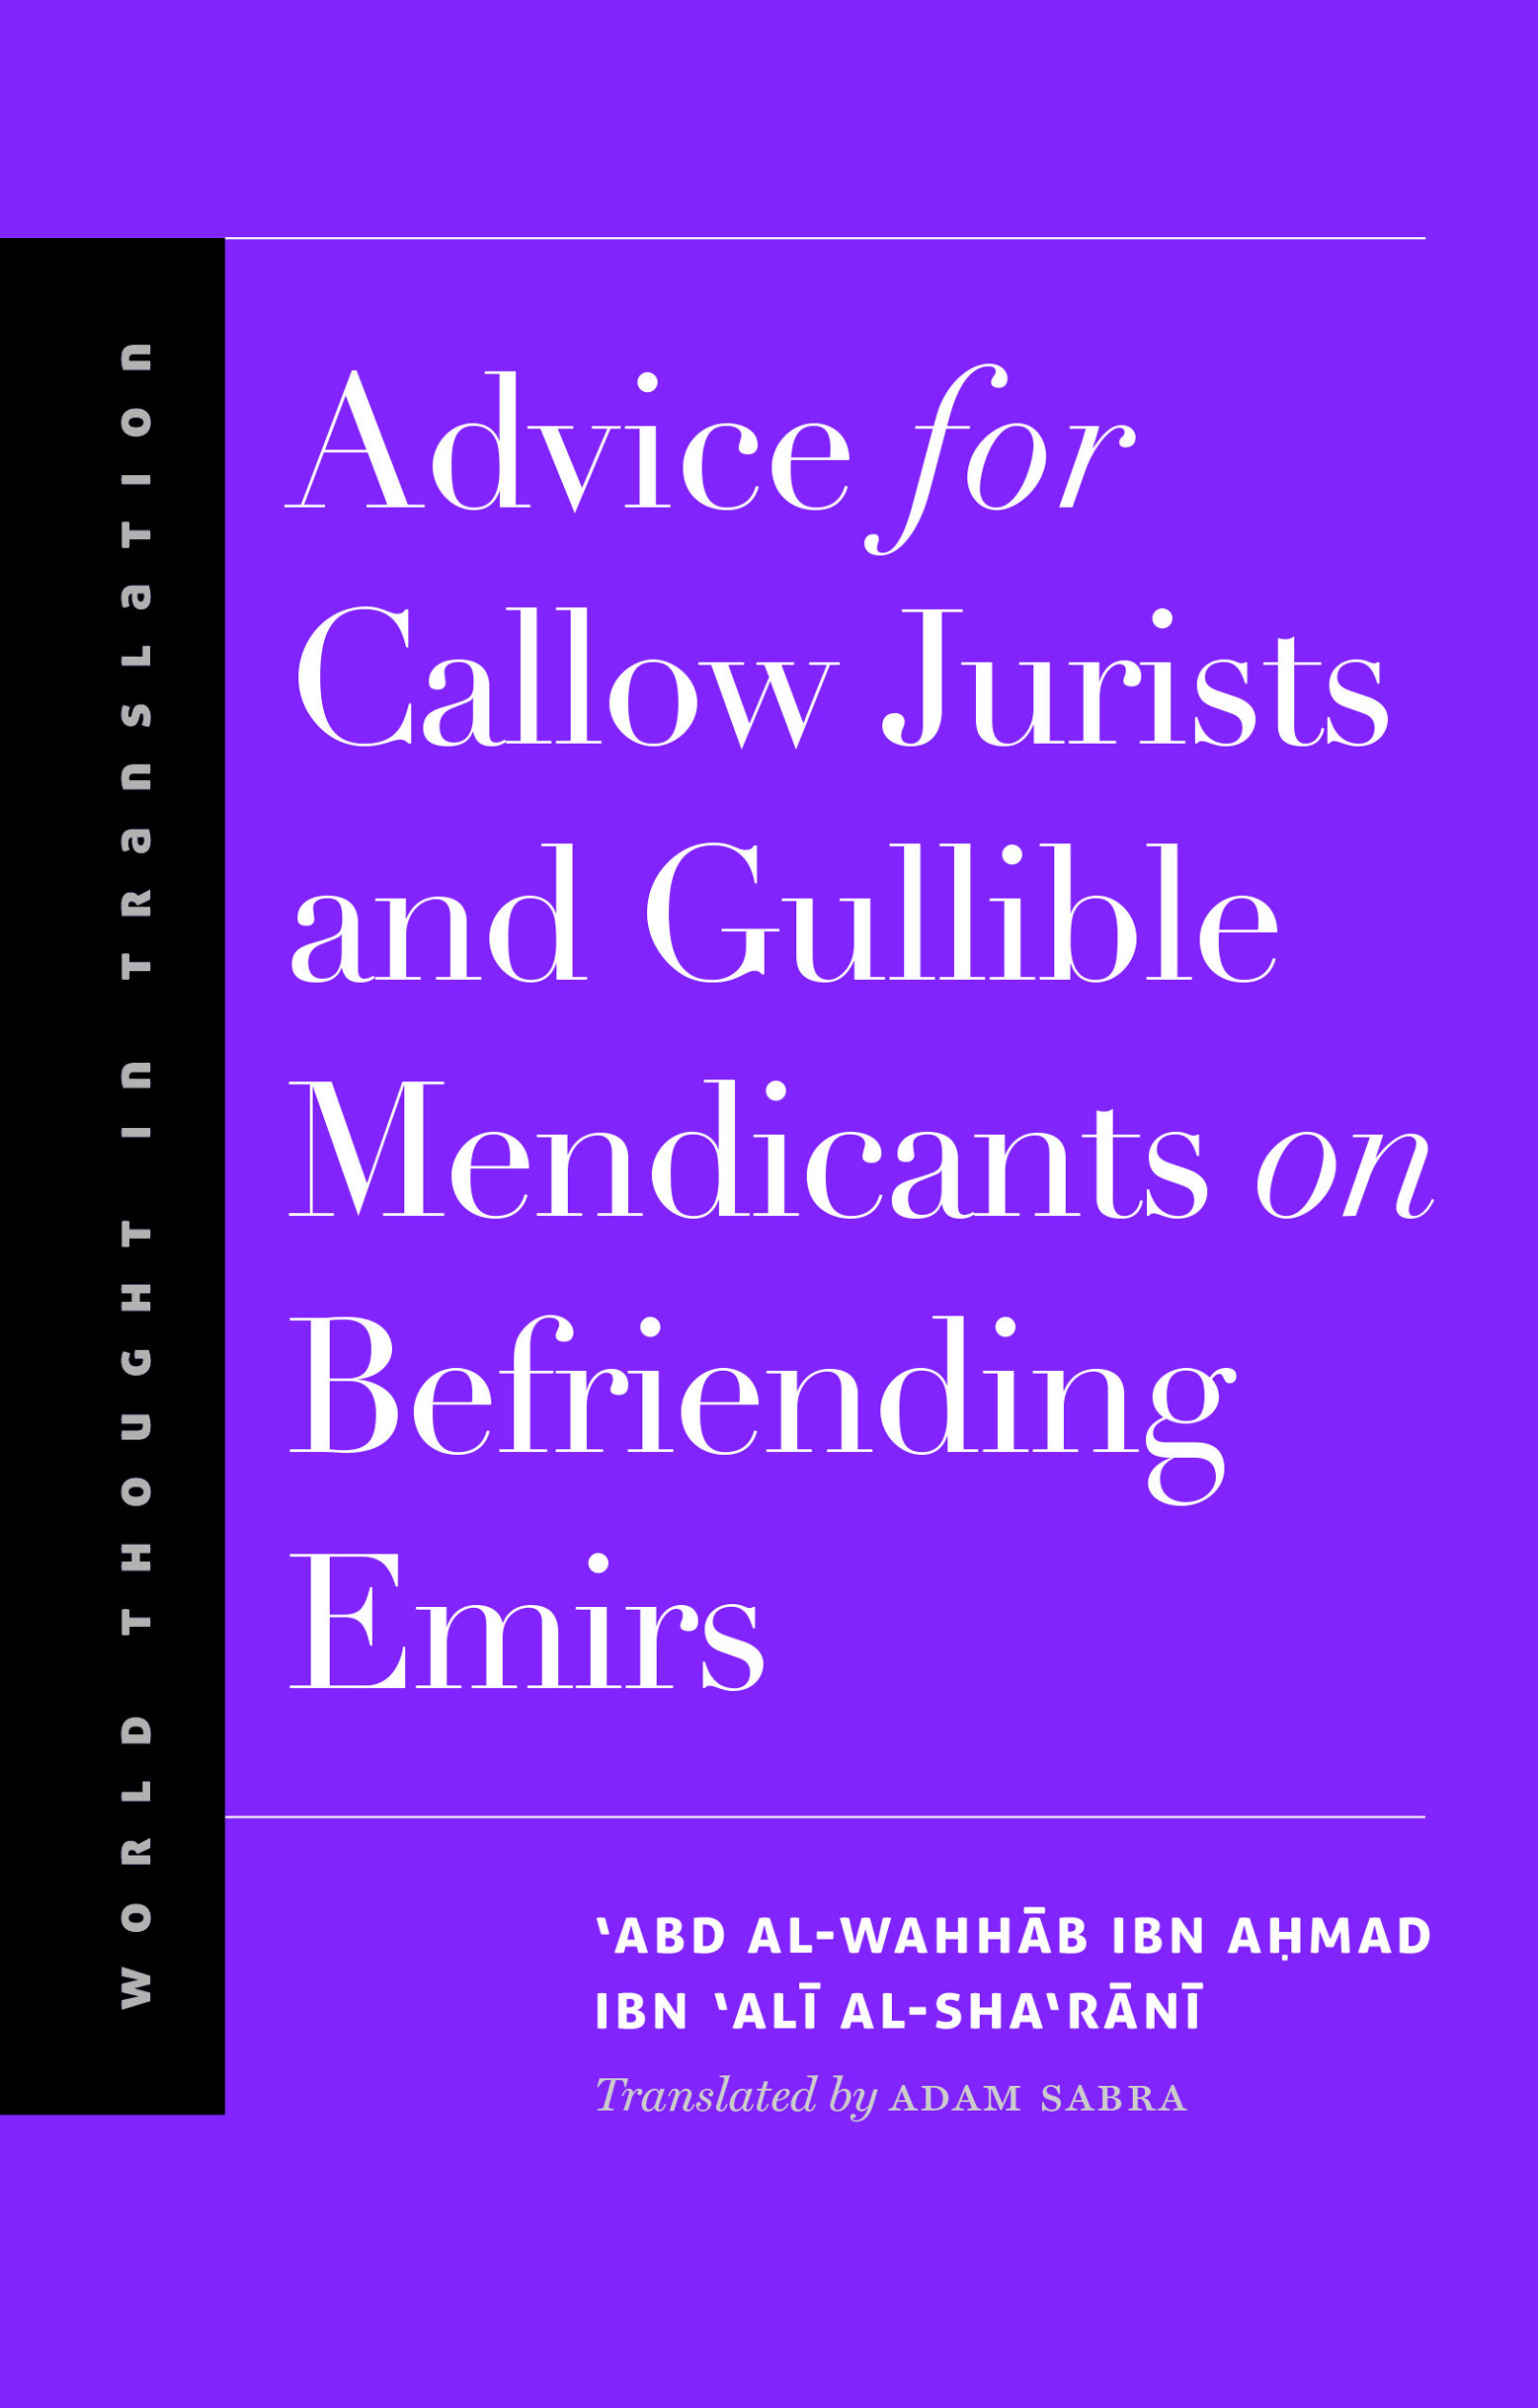 Book Cover: Advice for Callow Jurists and Guillible Mendicants on Befriending Emirs by Abd al-Wahhāb ibn Aḥmad ibn 'Alī al-Sha'rānī